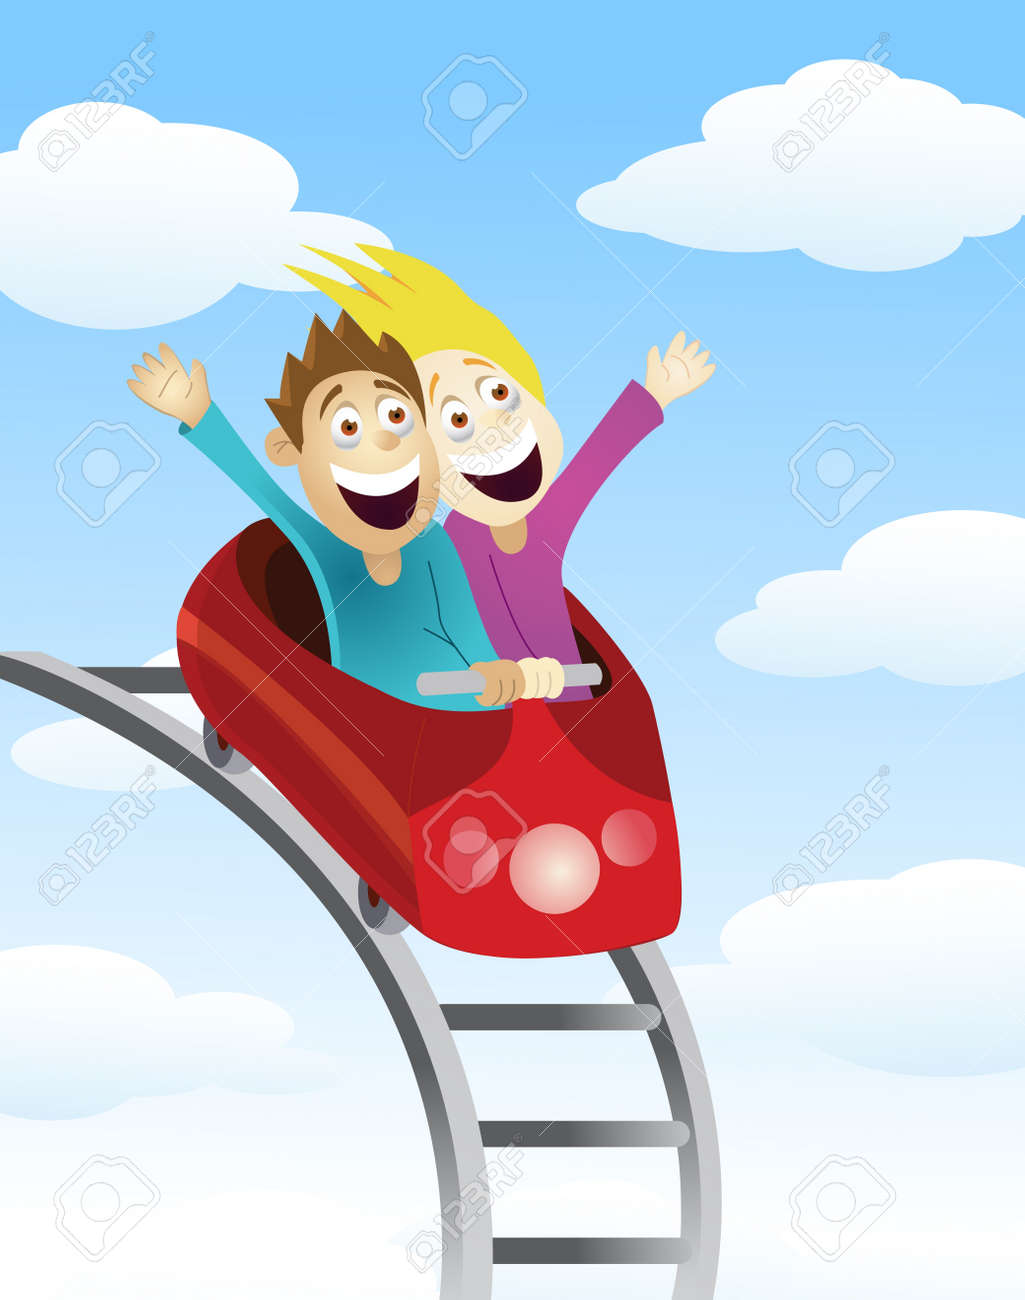 Man and women an a roller coaster Stock Vector - 13784061